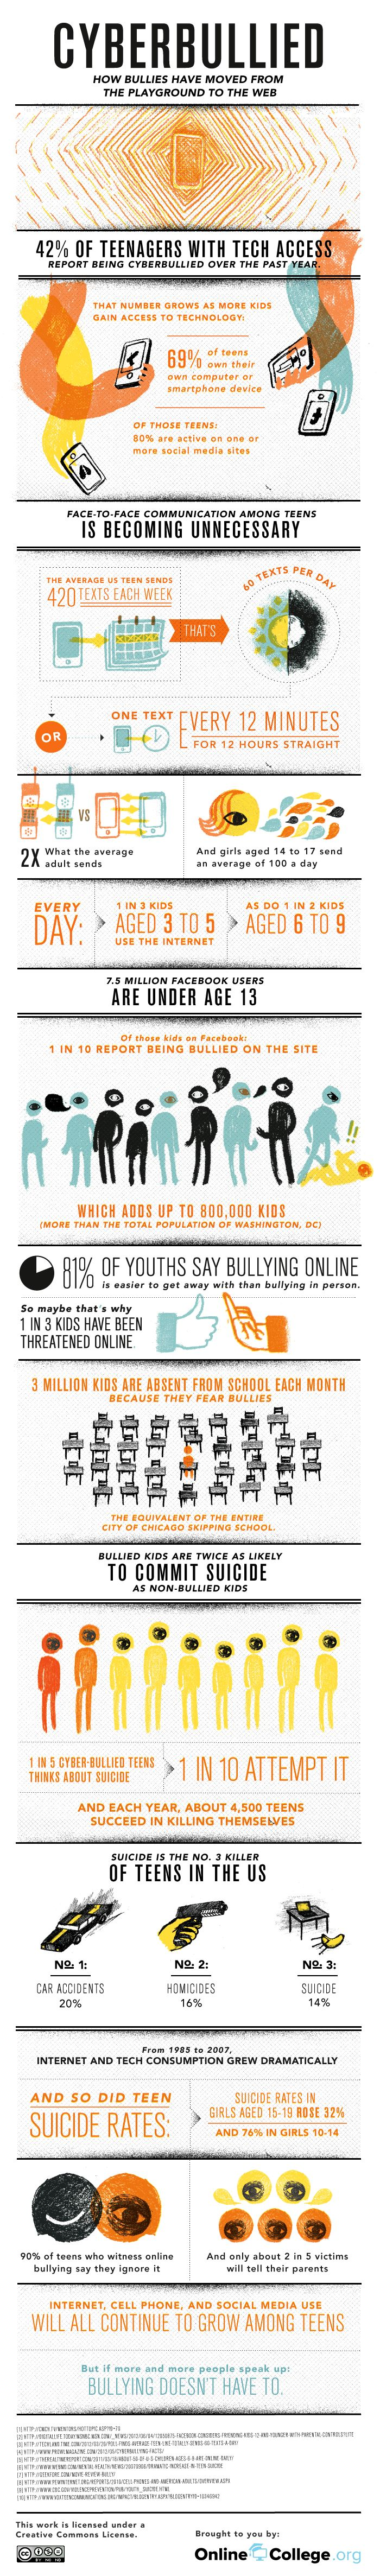 How Has Cyberbullying Moved From The Playground To The Web? #infographic